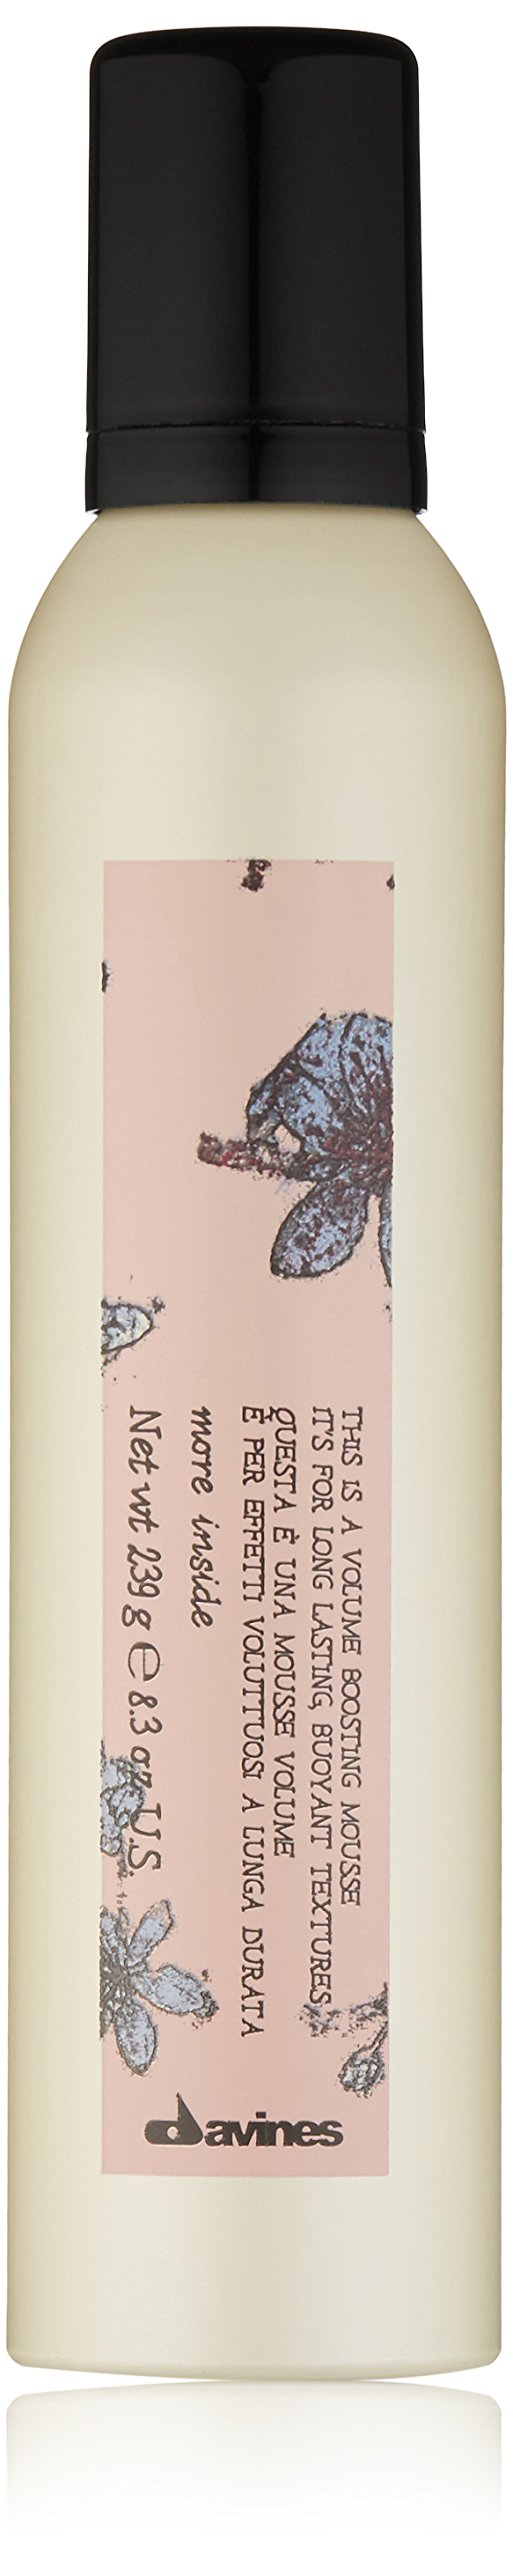 Davines This is a Volume Boosting Mousse,8.3 oz